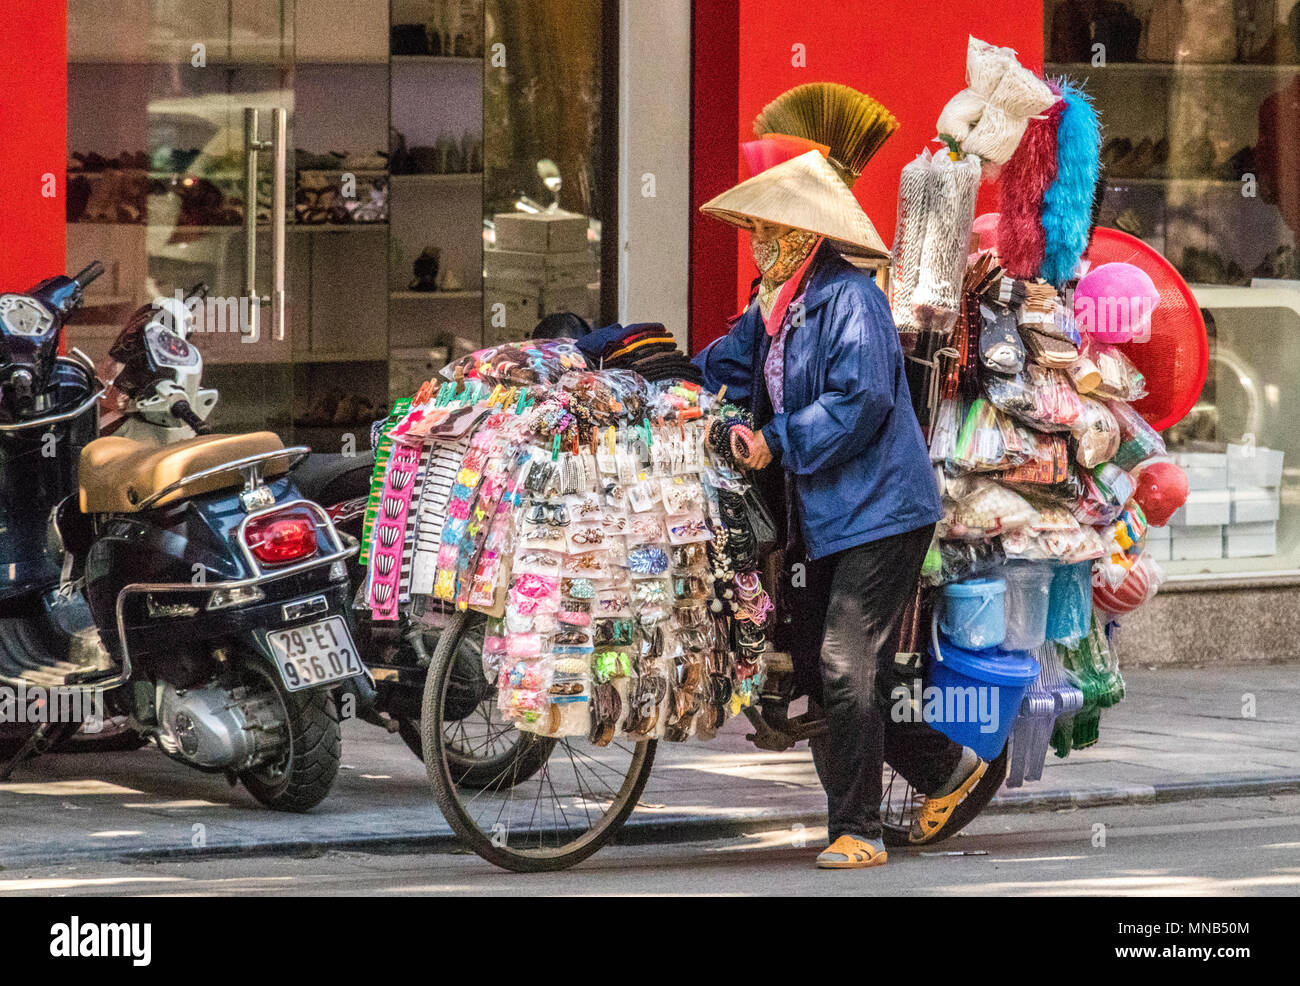 Life and work of vendors and shopkeepers on streets of Hanoi Vietnam